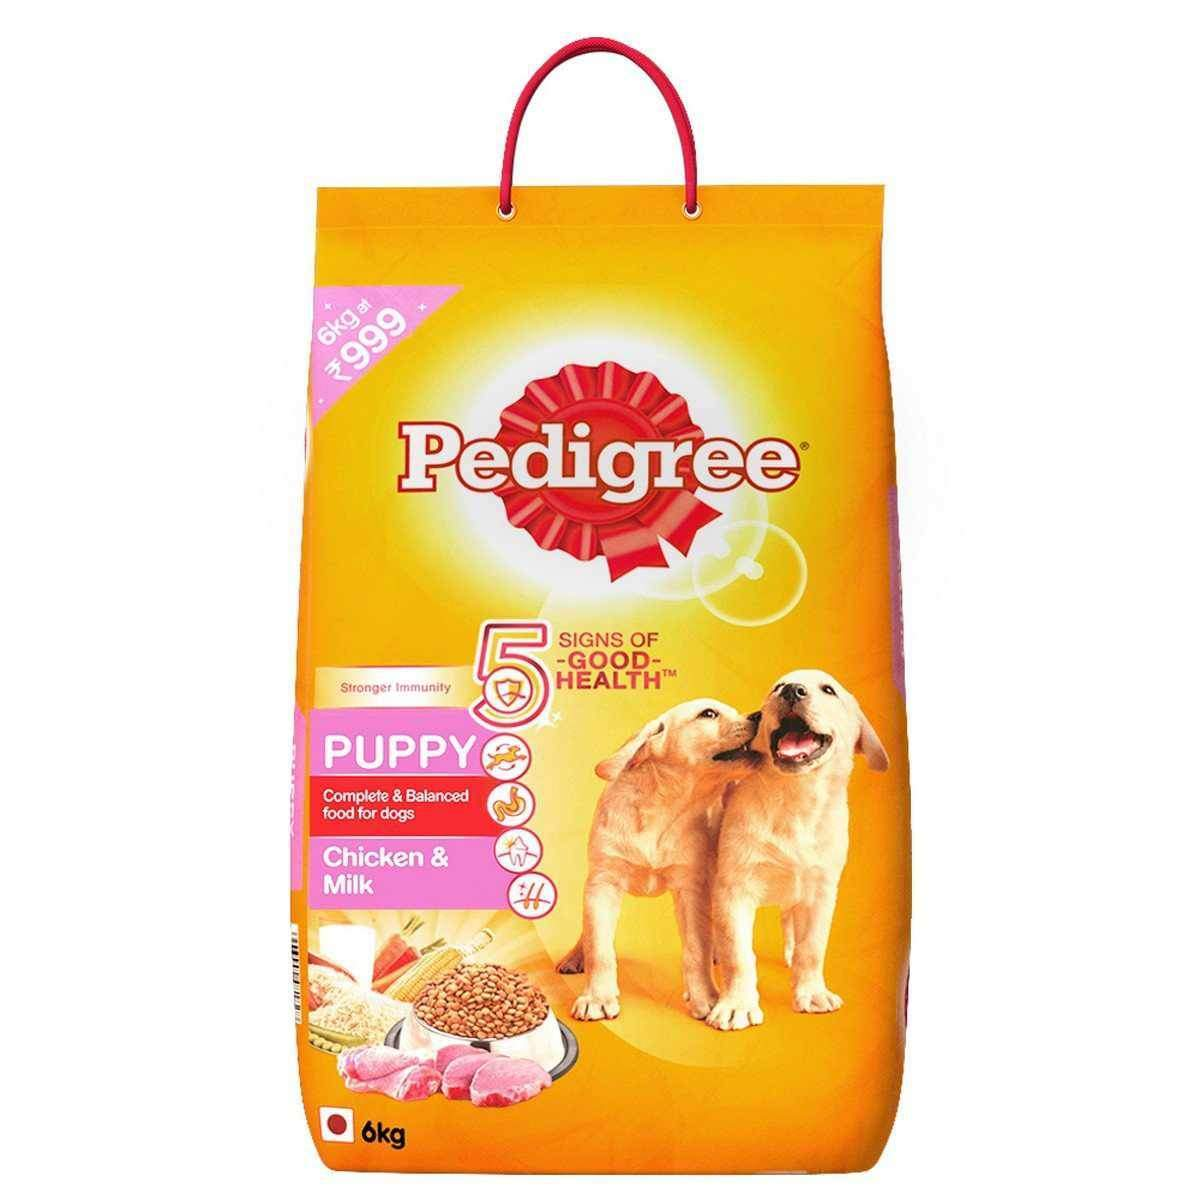 Jolly Wagger for Medium Breed Puppy with Pedigree Chicken & Milk 6kg